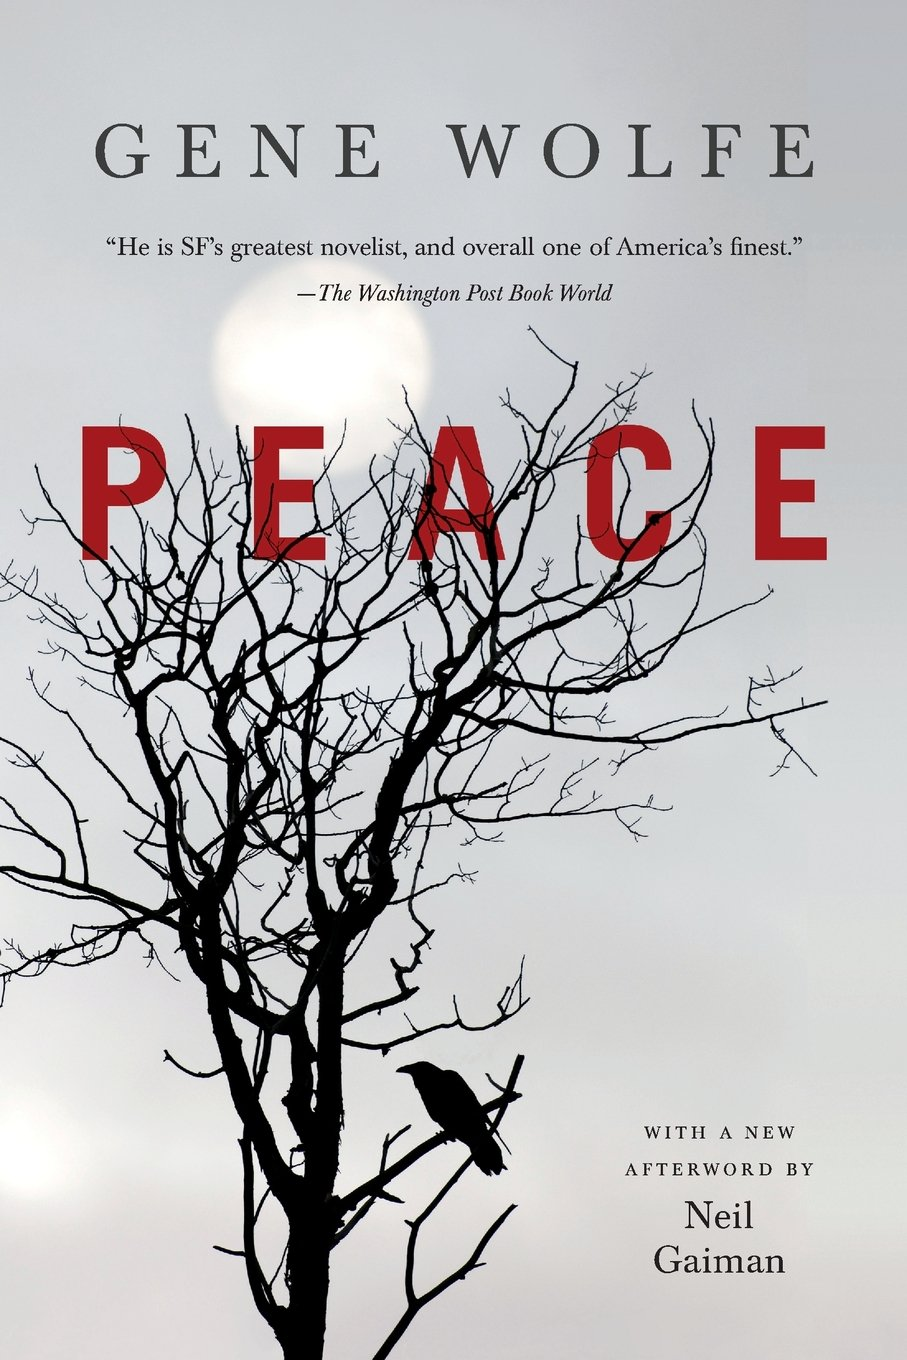 Peace (1975) - A Proustian ghost story hiding within a gentle midwestern memoir written beyond time & space. Alden Weer, an unassuming man, tells his life story in a series of fragments & tangents, often digressing into stories told to him as a child & stories within stories as the narrative progresses. This novel of pure memory is at once Wolfe at his most ordinary & his strangest.